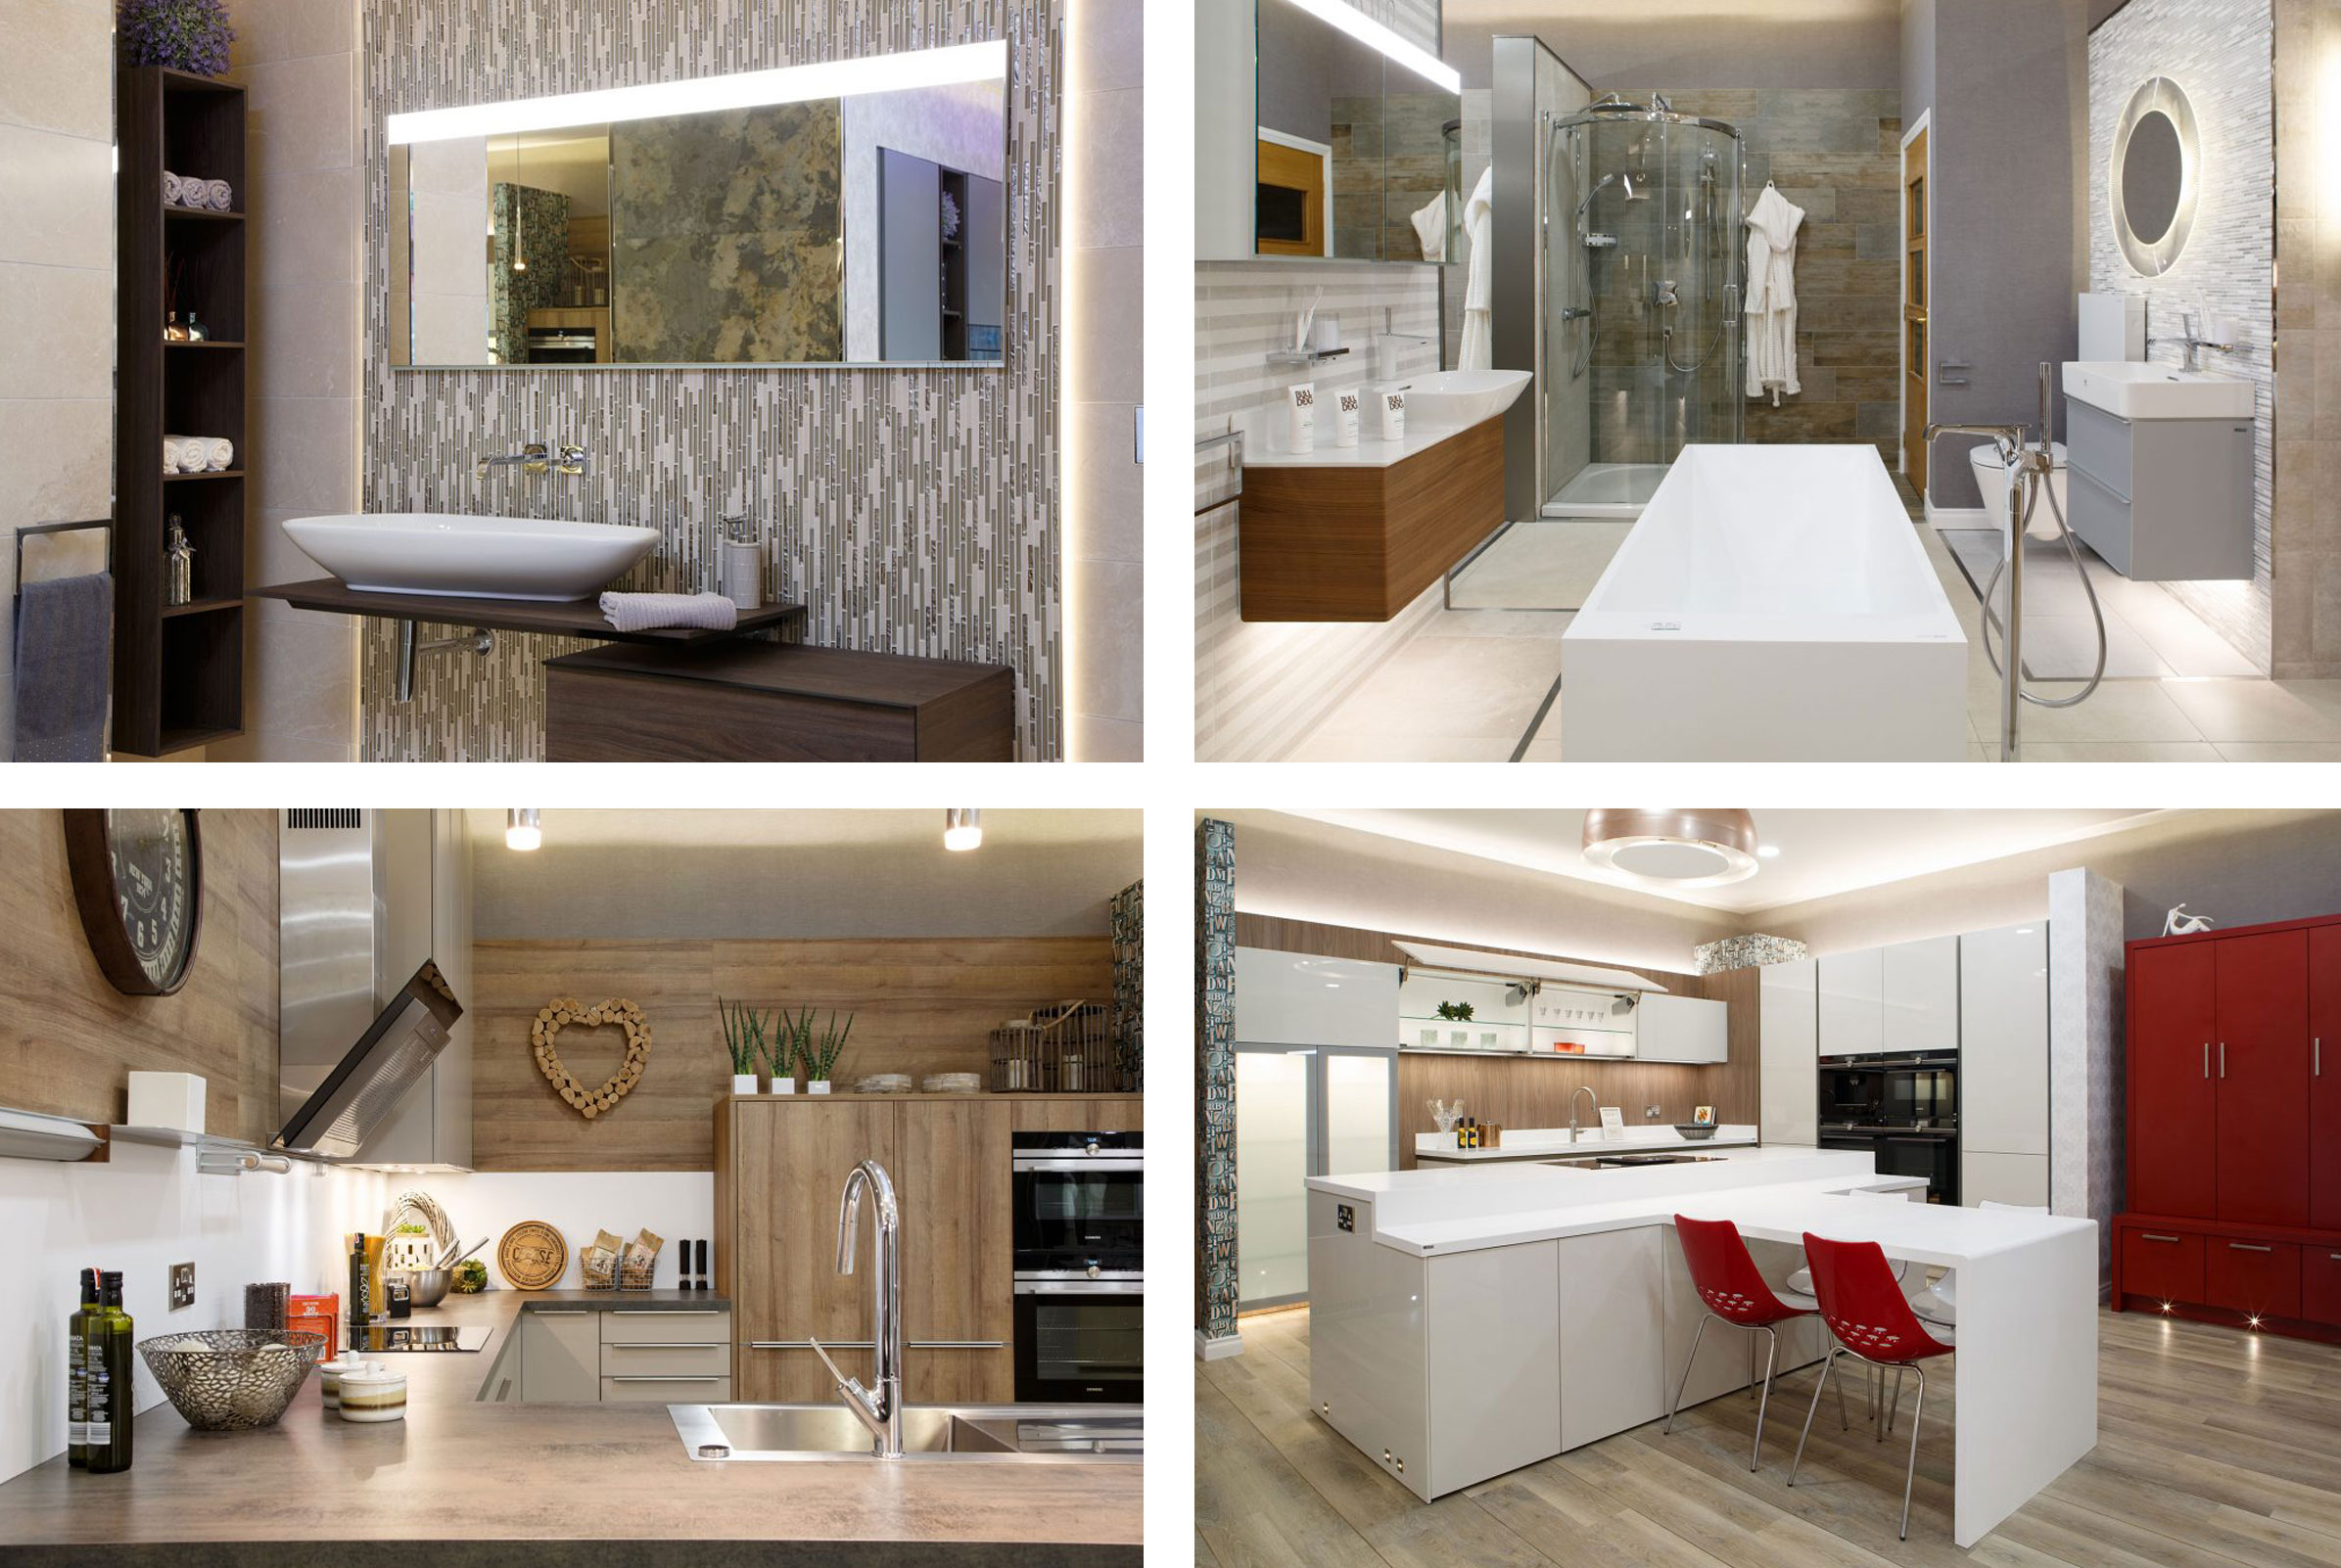 mihaus kitchens and bathrooms